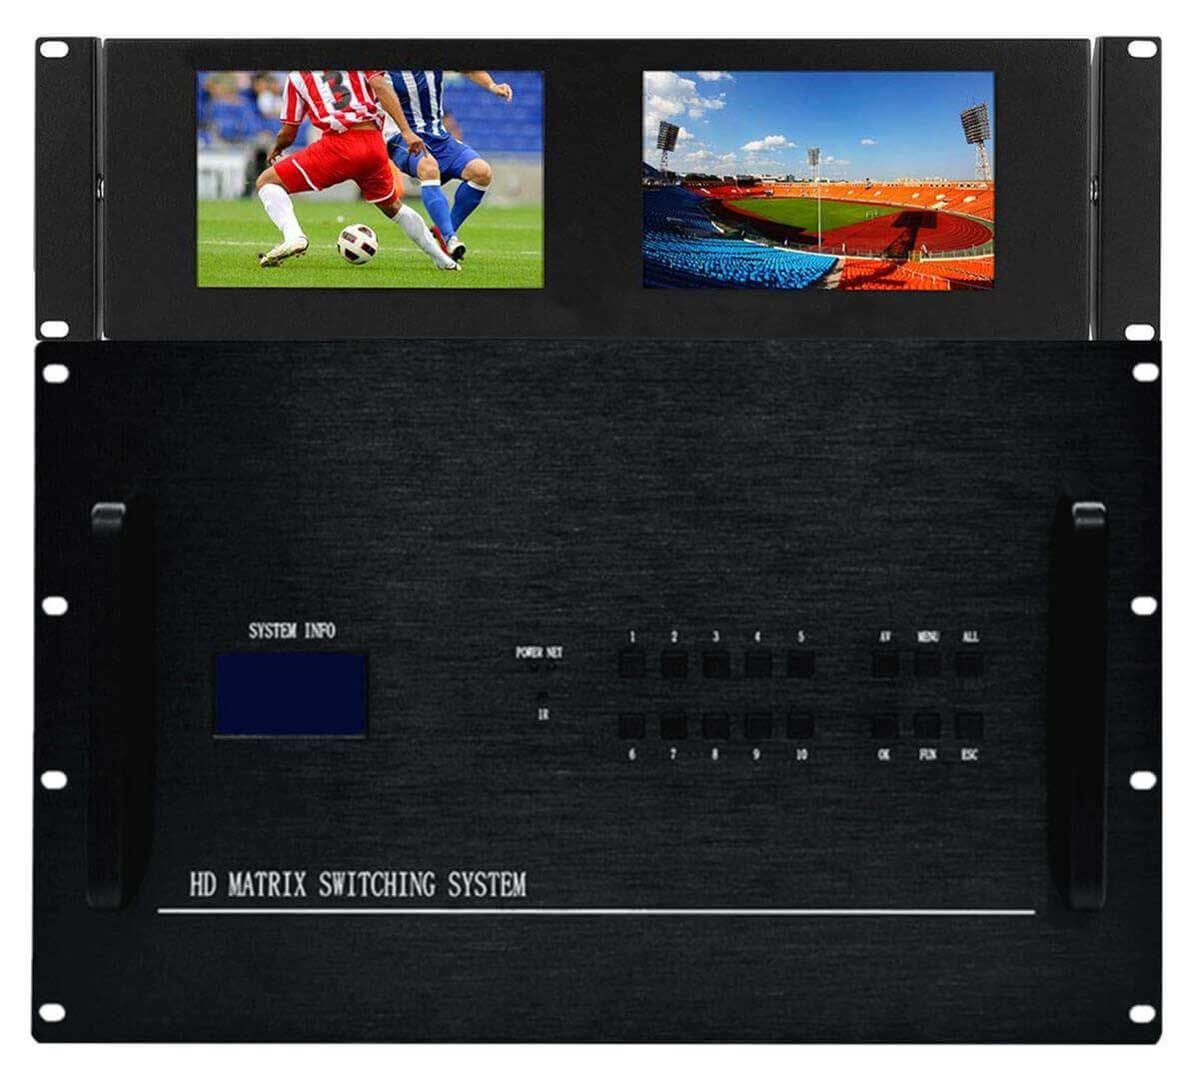 4K 32x8 HDMI Matrix HDBaseT Switch with 8-CAT5 Extenders